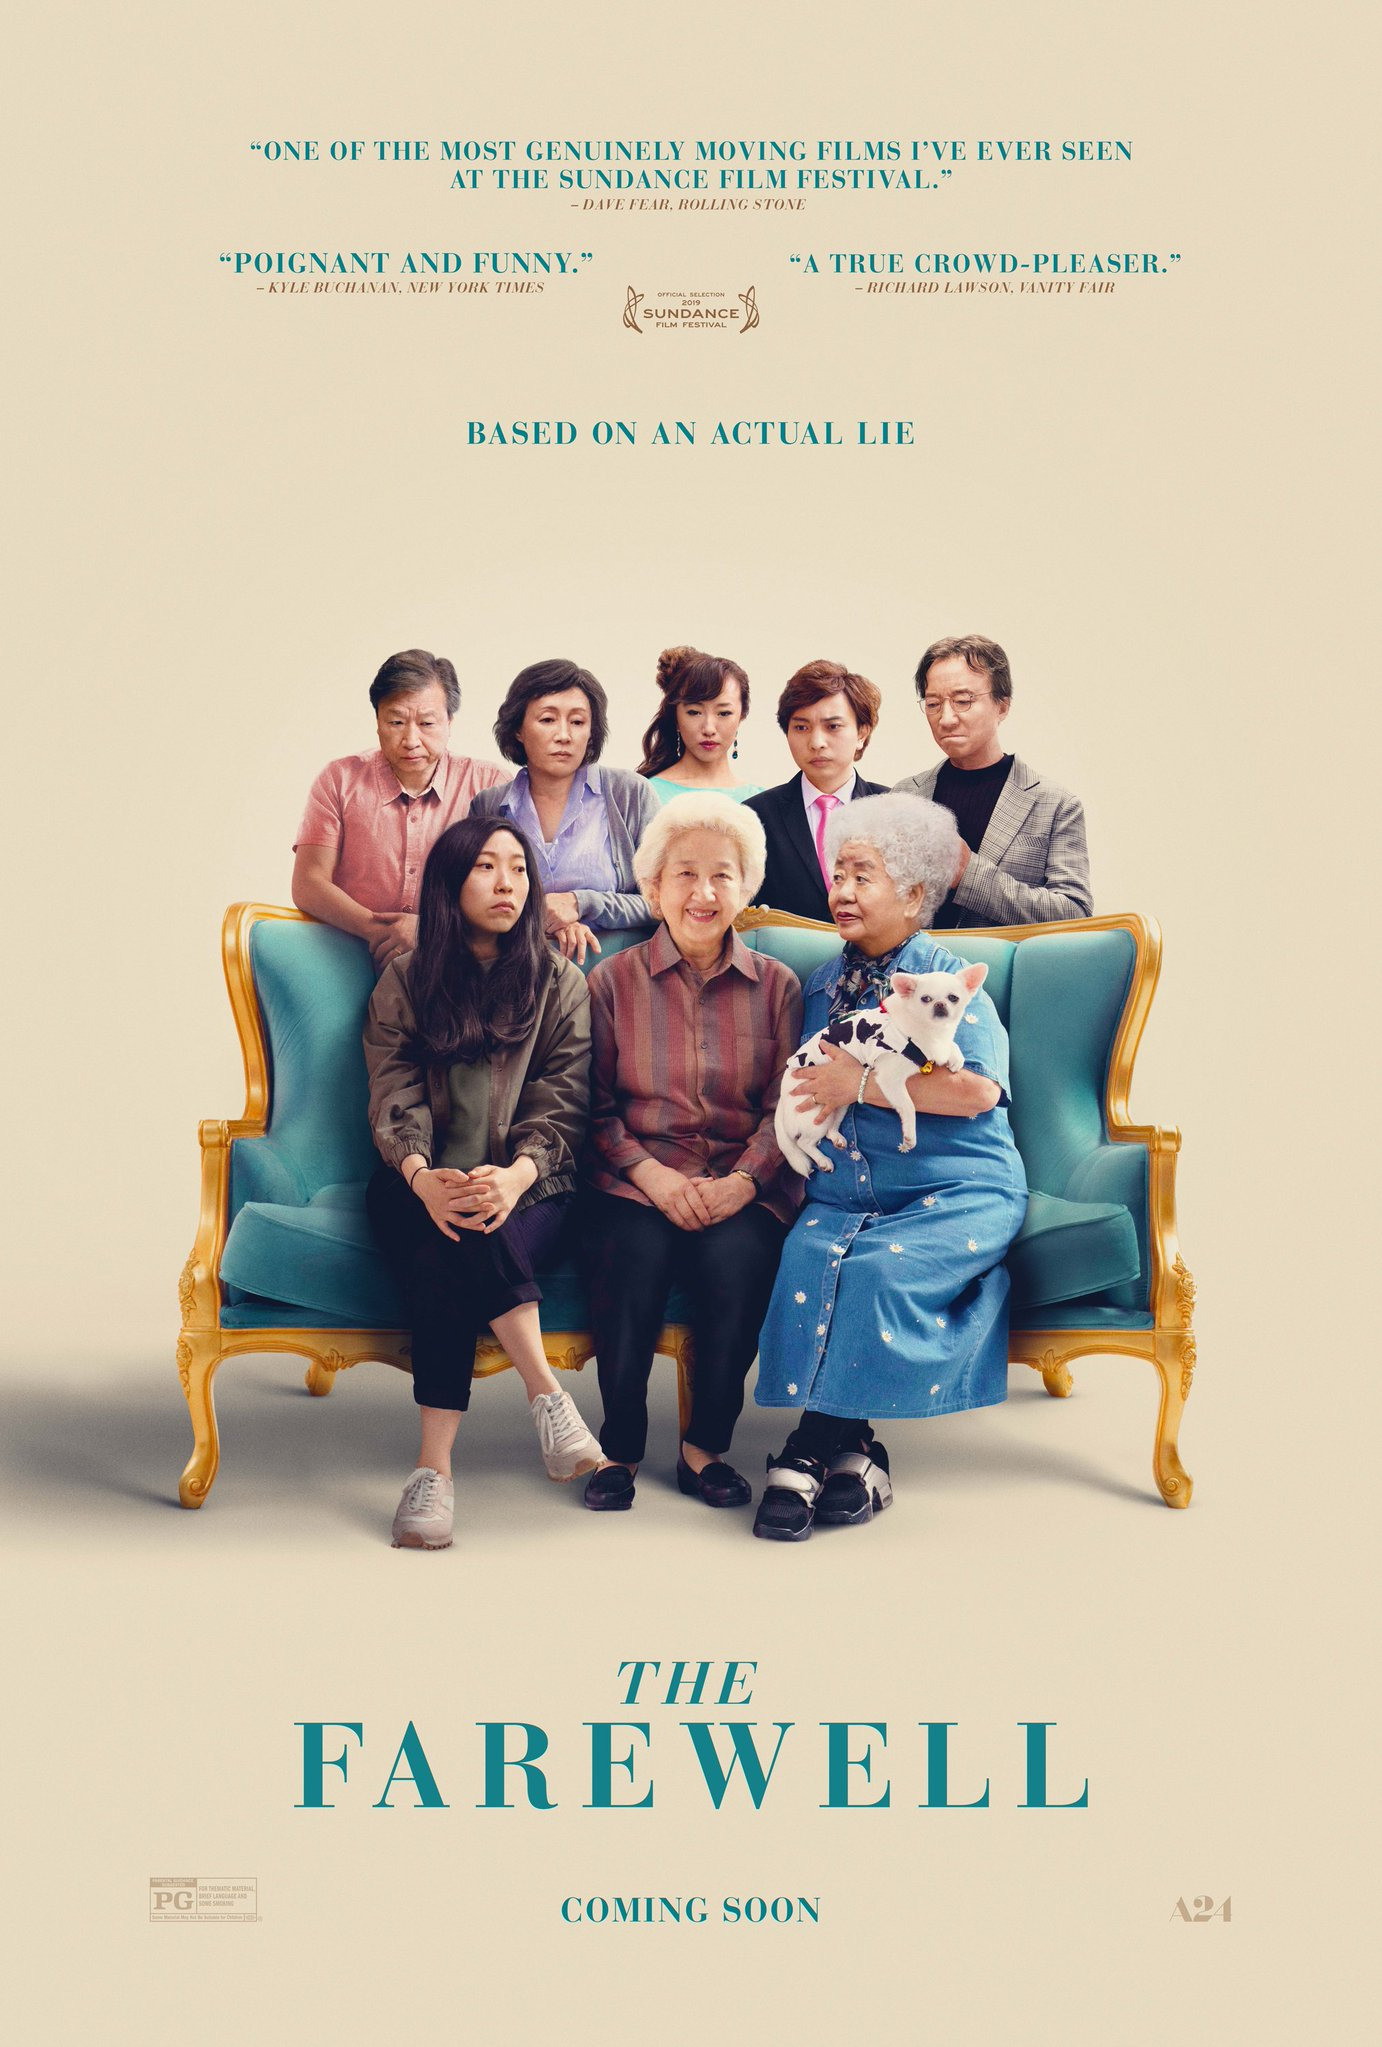 The Farewell   (2019) dir. Lulu Wang Rated: PG image: ©2019  A24